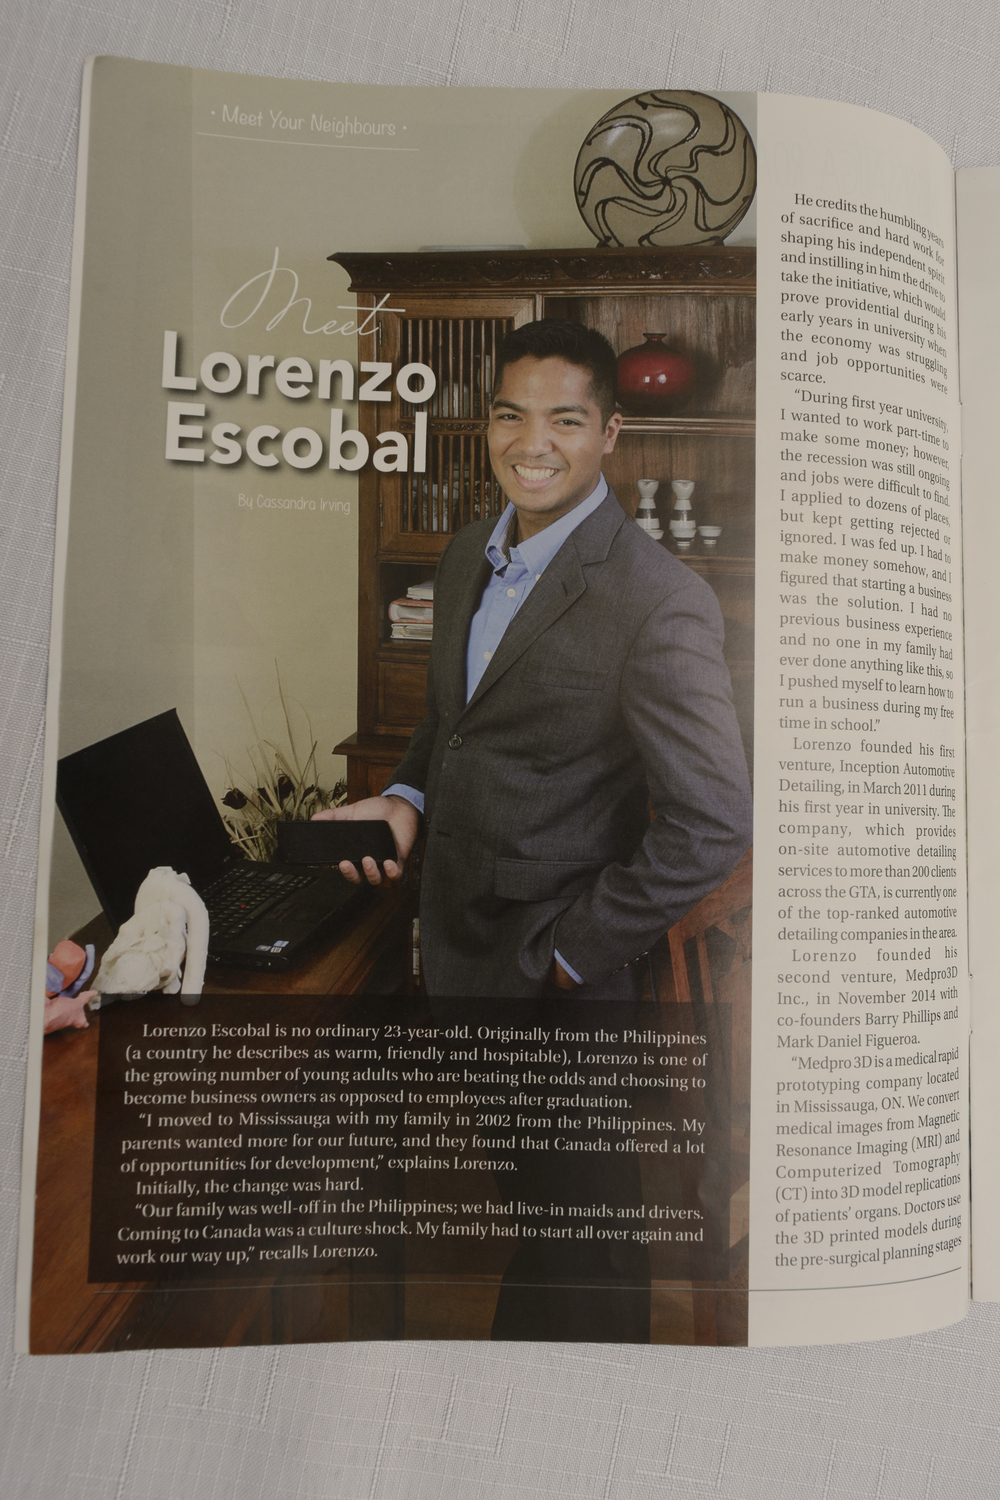 Lorenzo Escobal Magazine Feature Inception Automotive Detailing Neighbors of Mississauga Road